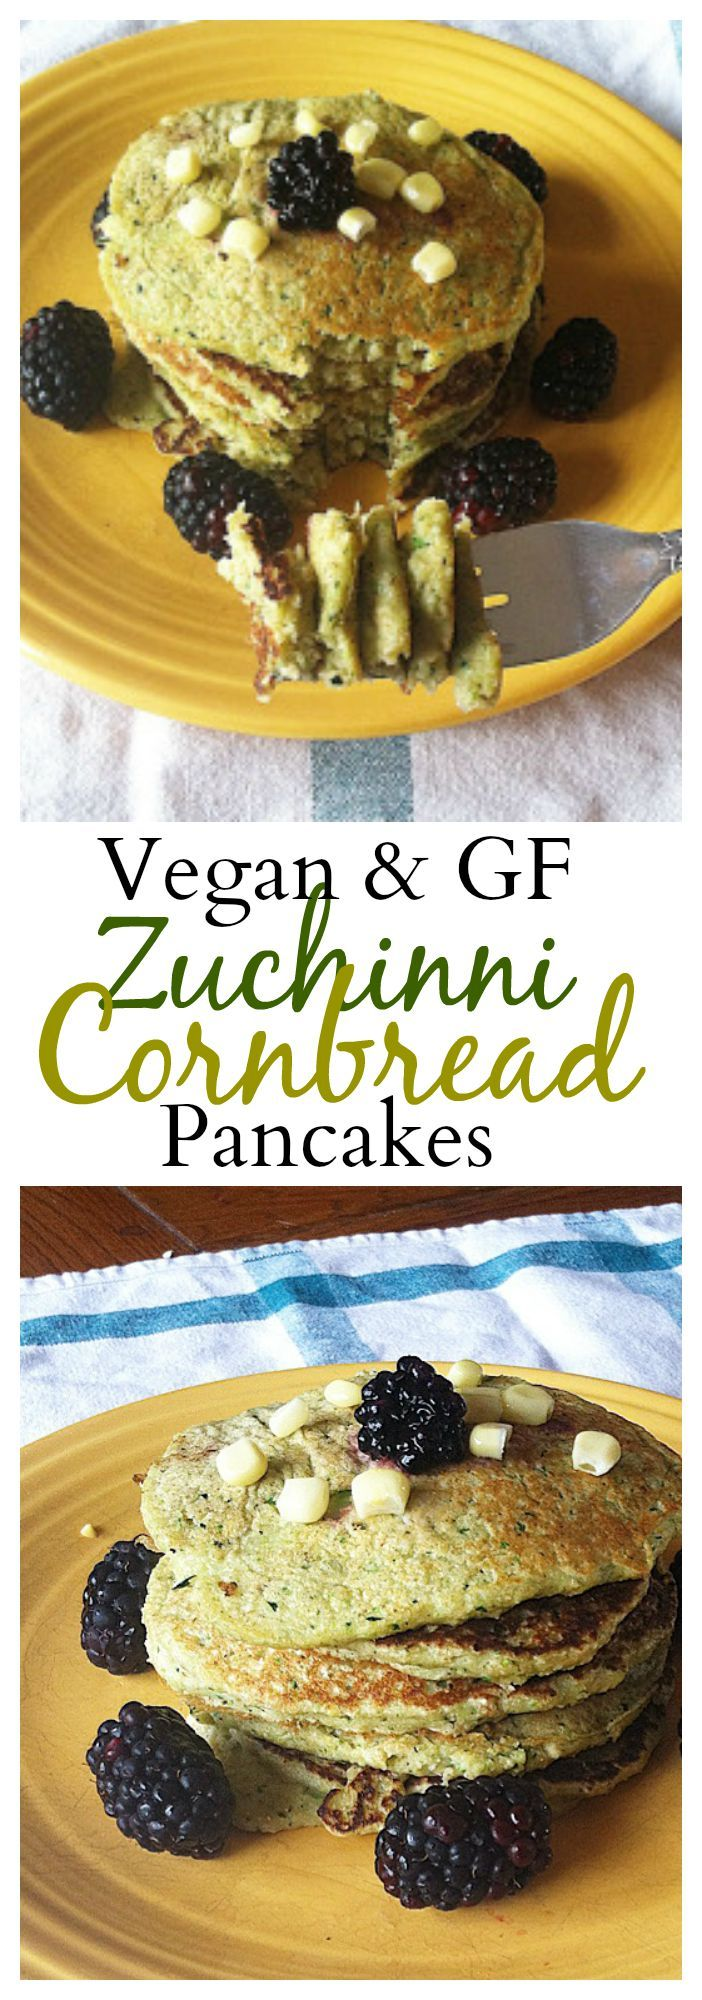 These may possibly be the best pancakes ever! Zucchini Cornbread Pancakes that are both #vegan and #glutenfree! #healthy